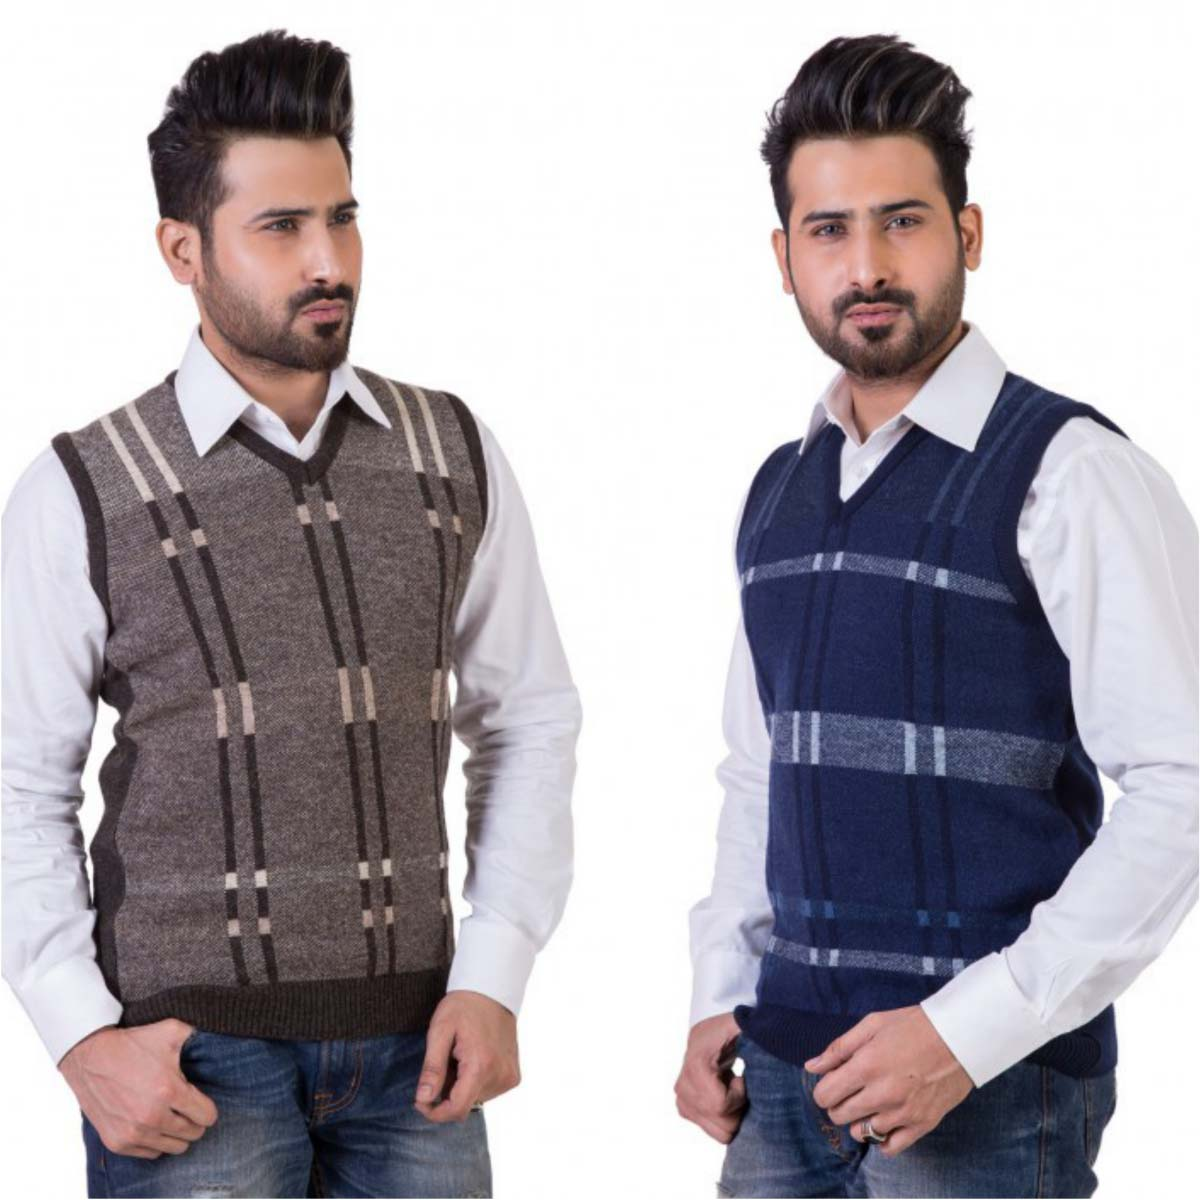 bonanza-winter-sweaters-and-outfits-2017-2018-for-men-6